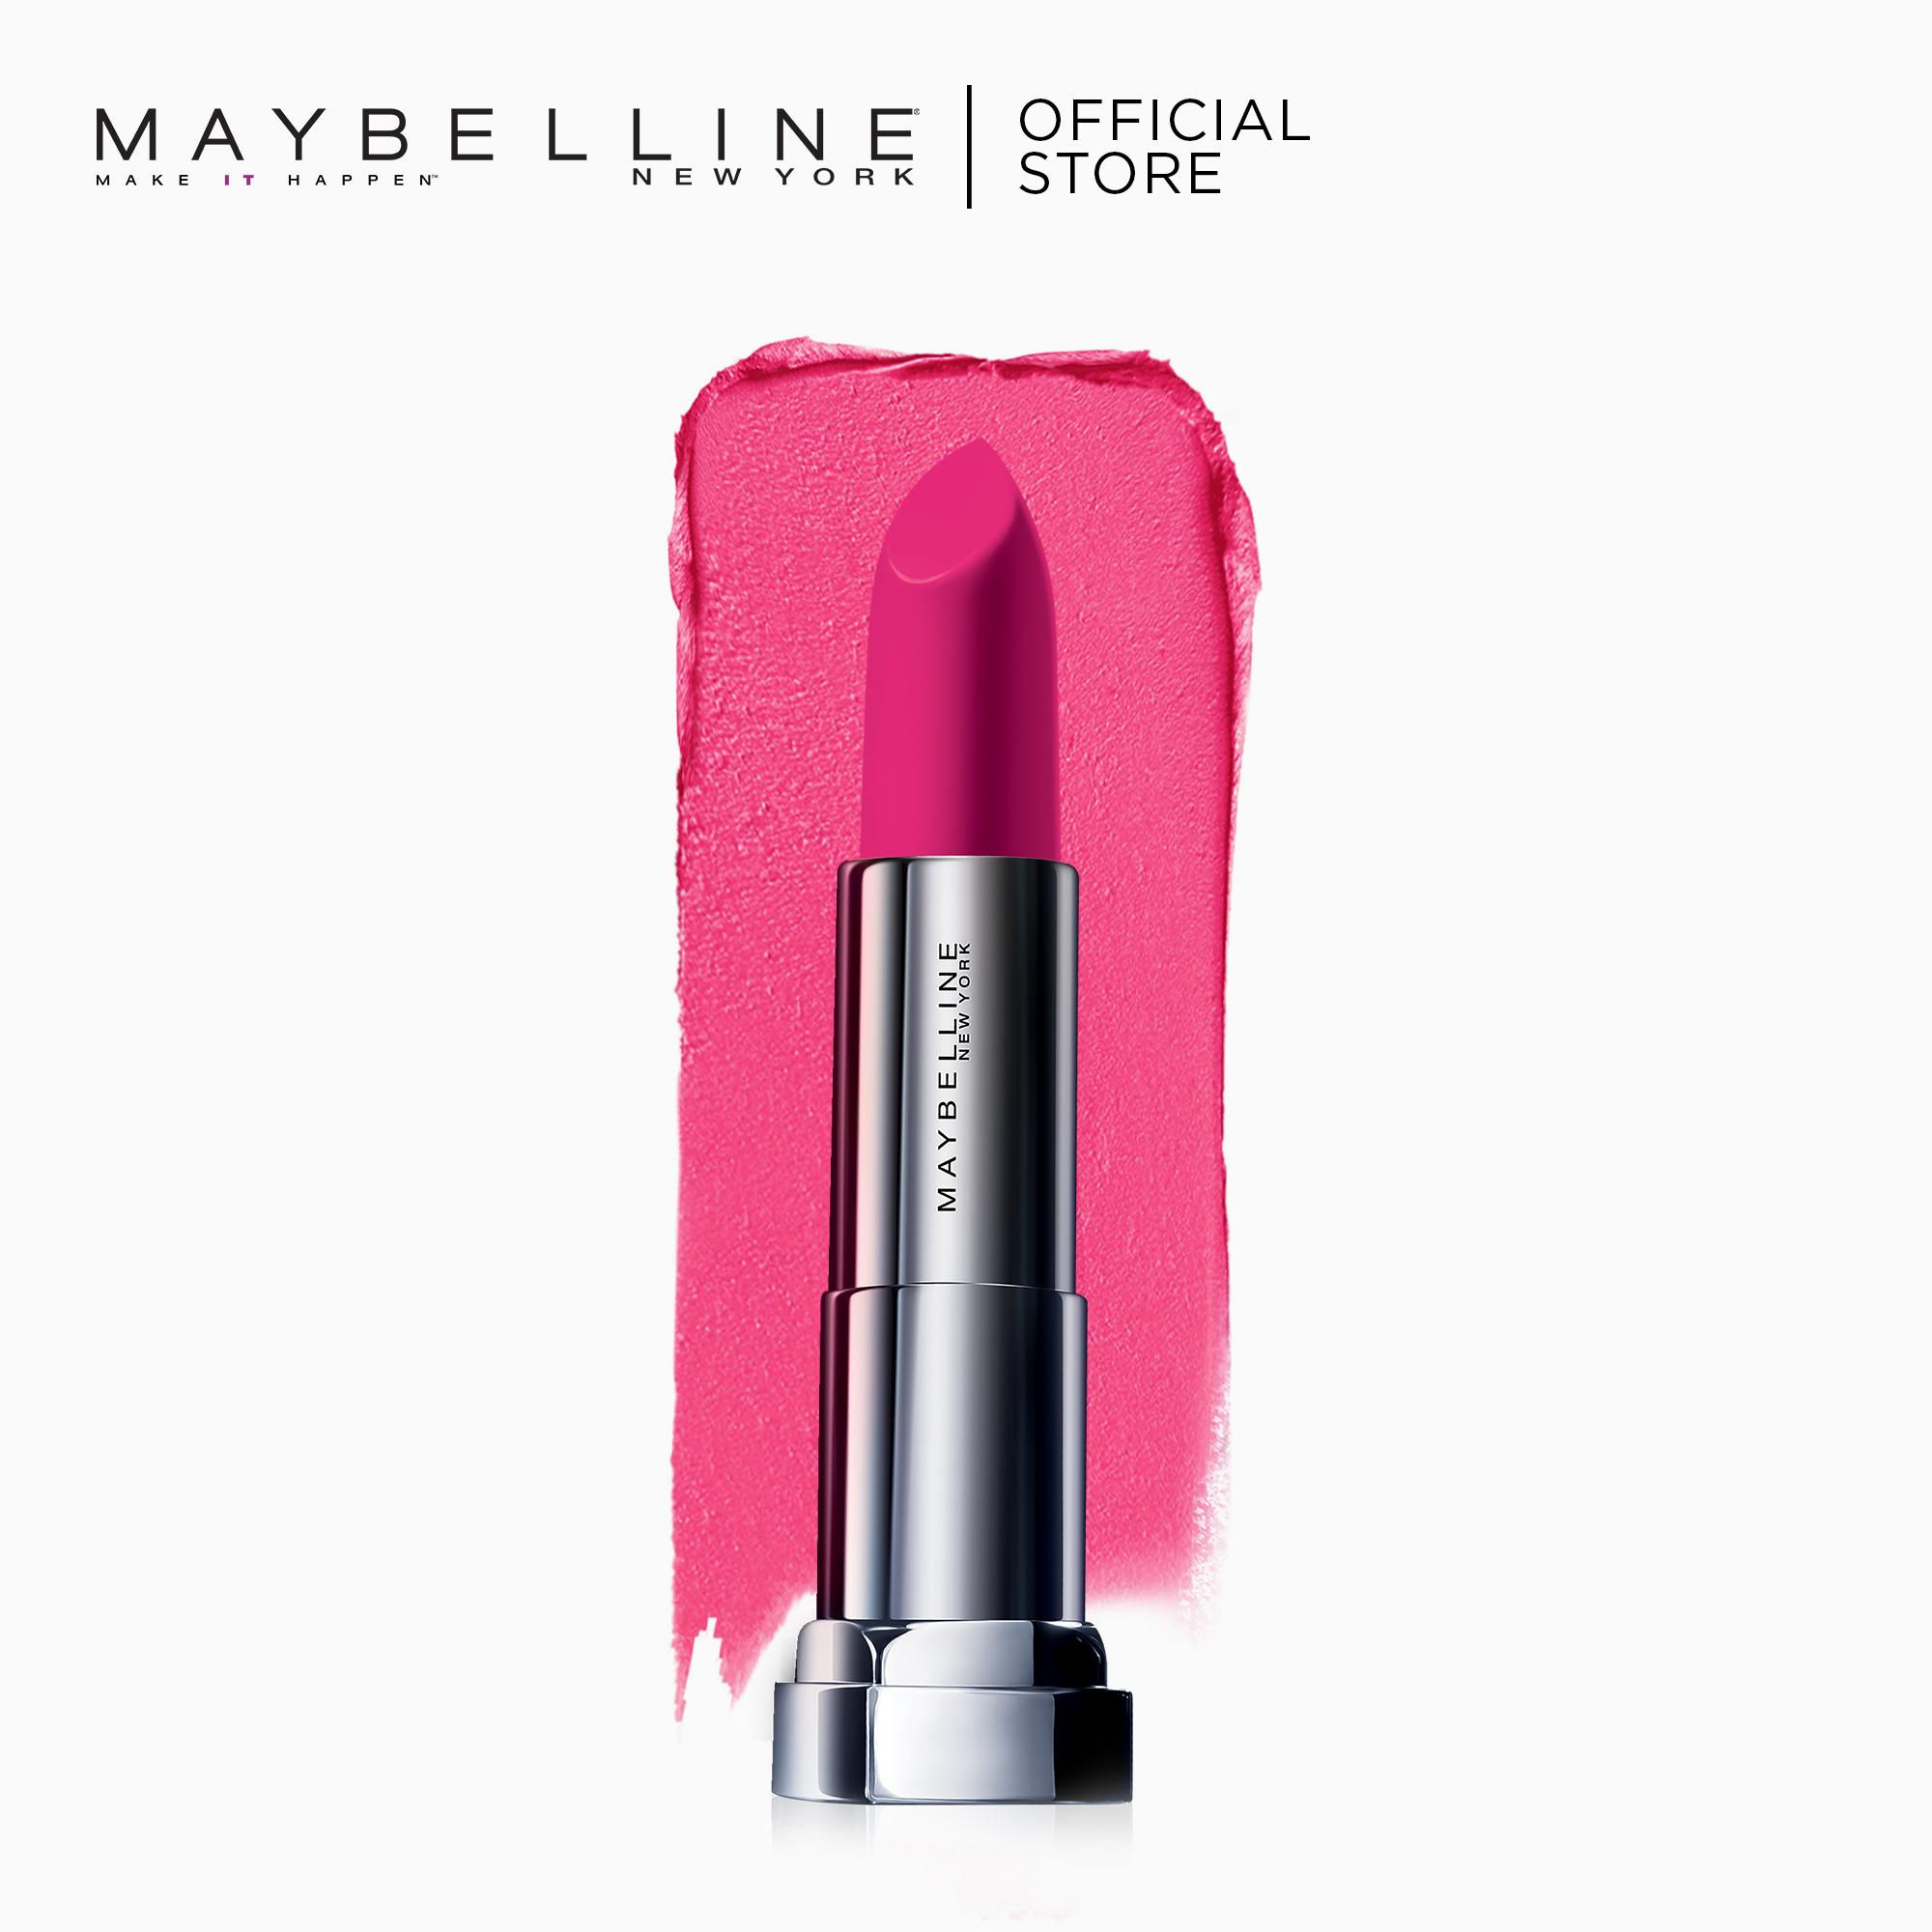 Maybelline Color Sensational Powder Matte Lipstick (Fuchsia Flash) Philippines